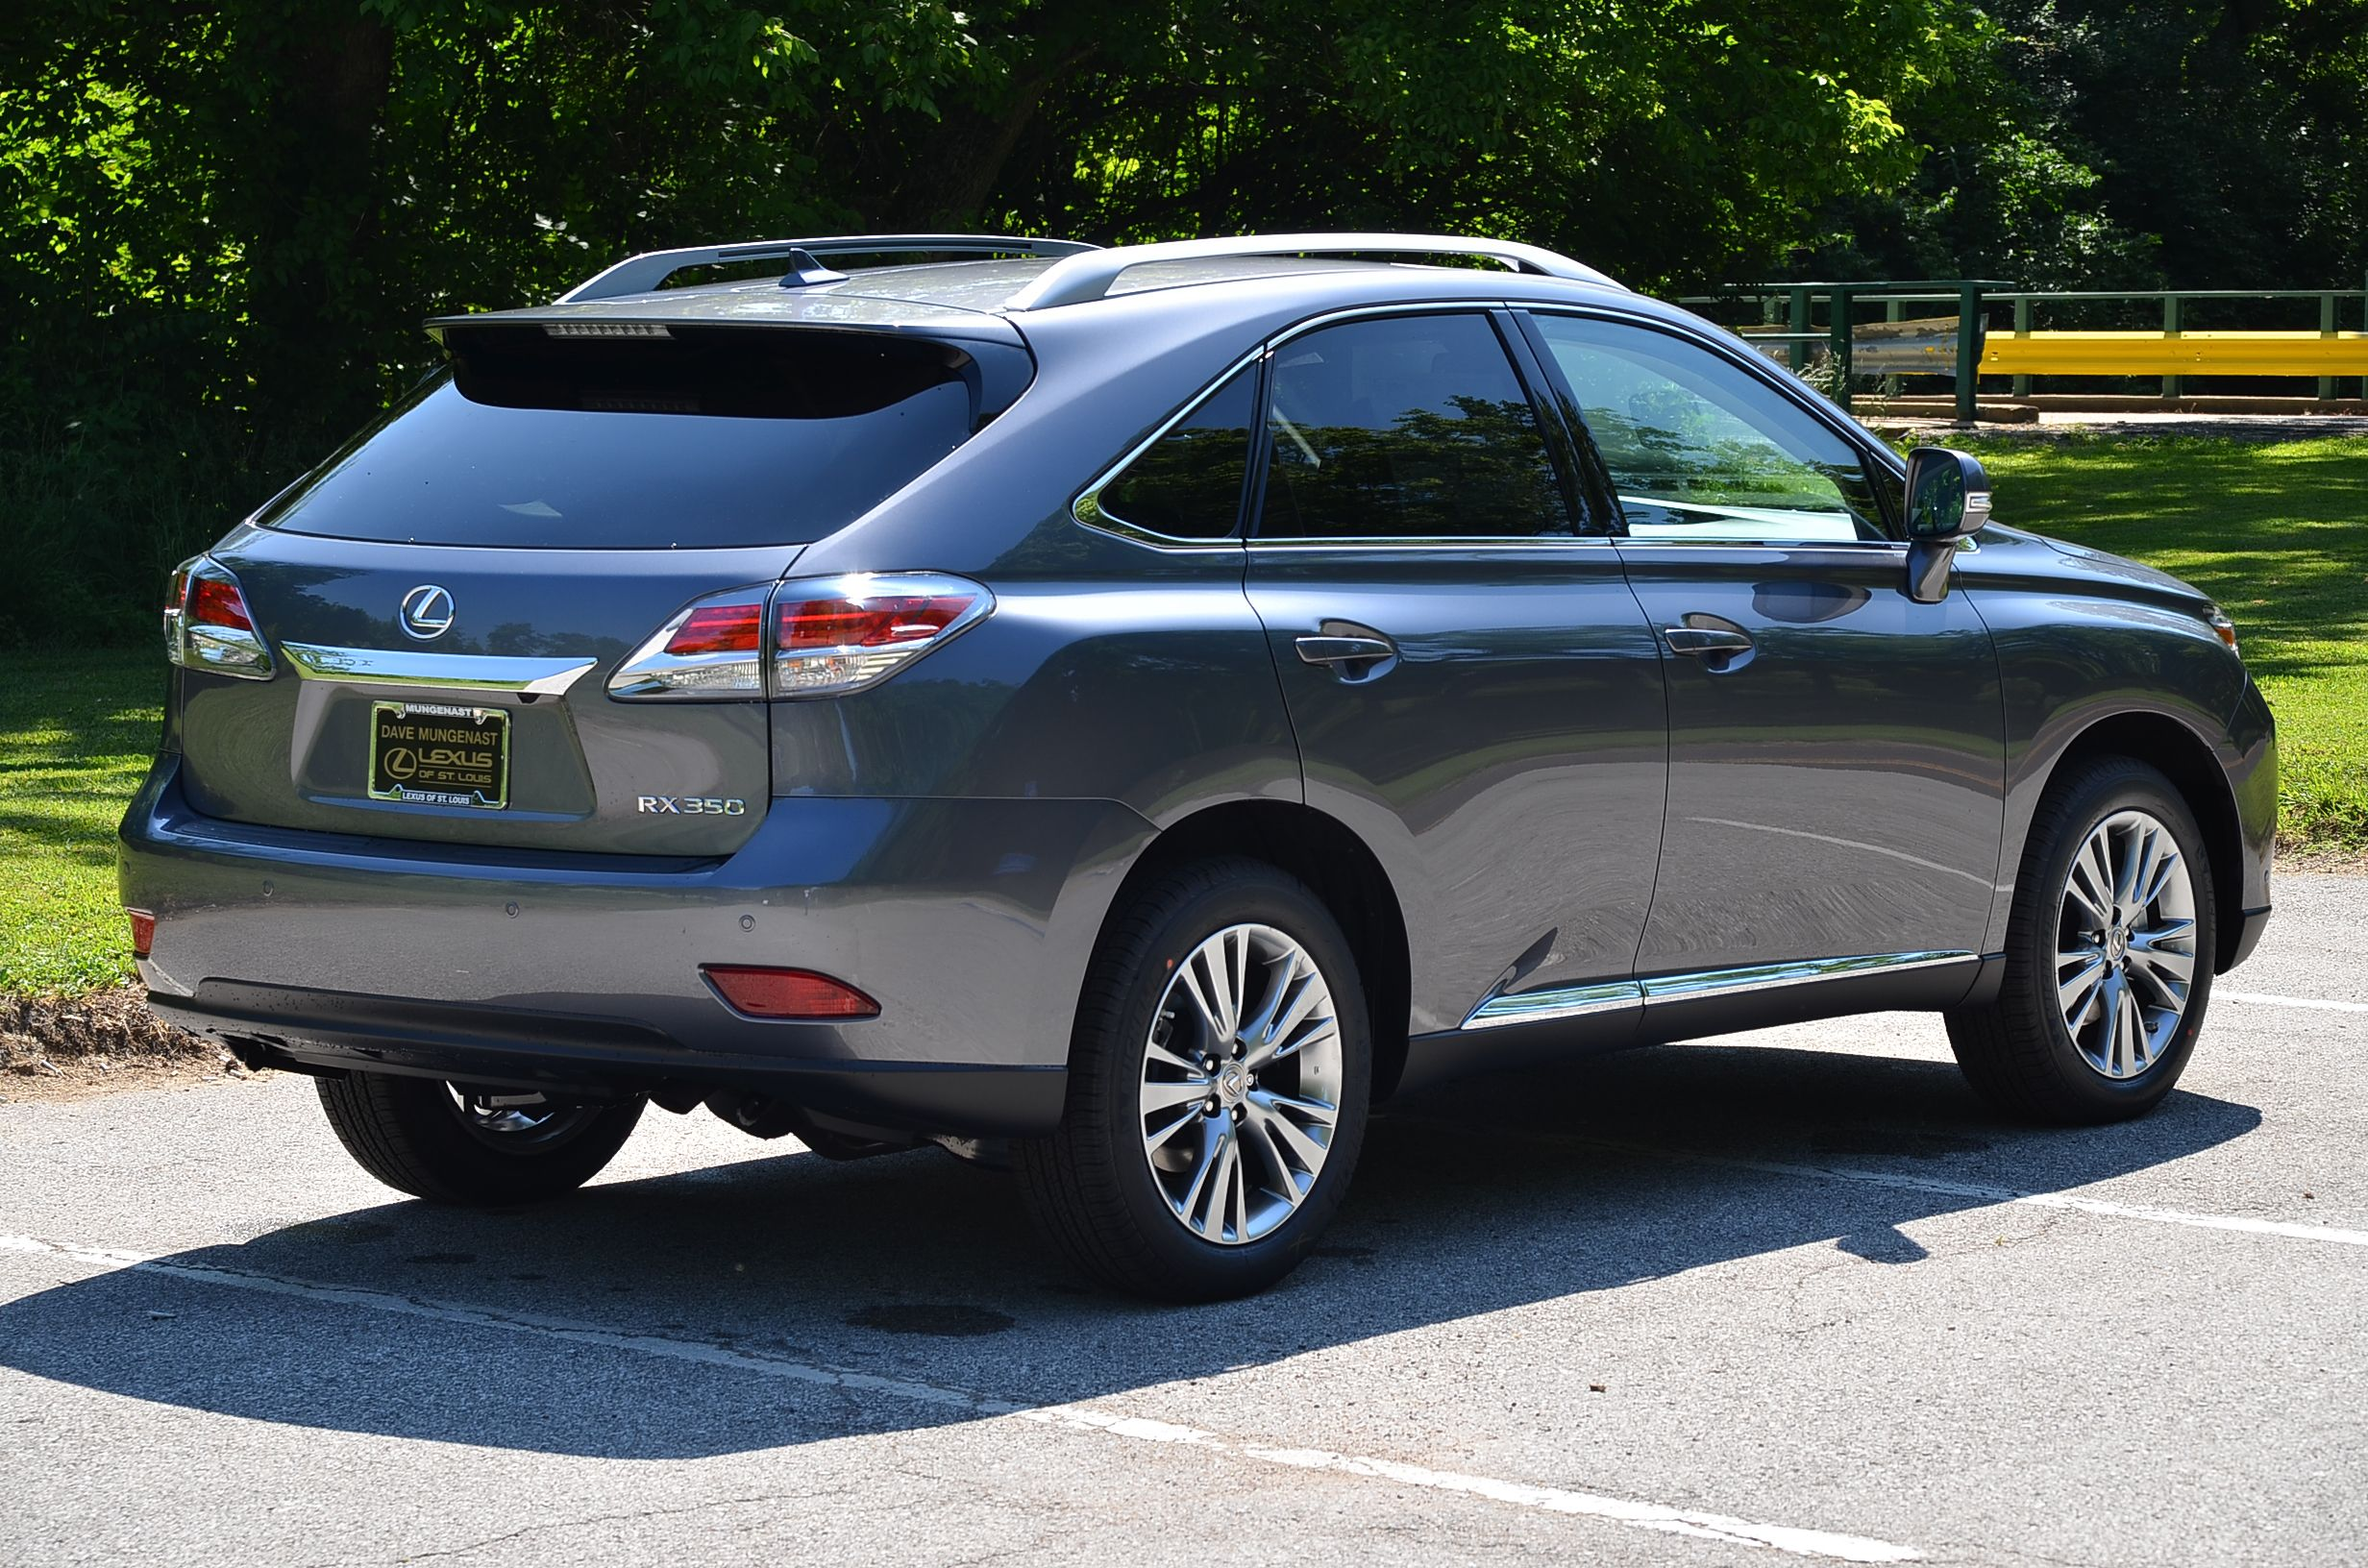 Take a look at this STUNNING new 2013 Lexus RX 350 in new Nebula